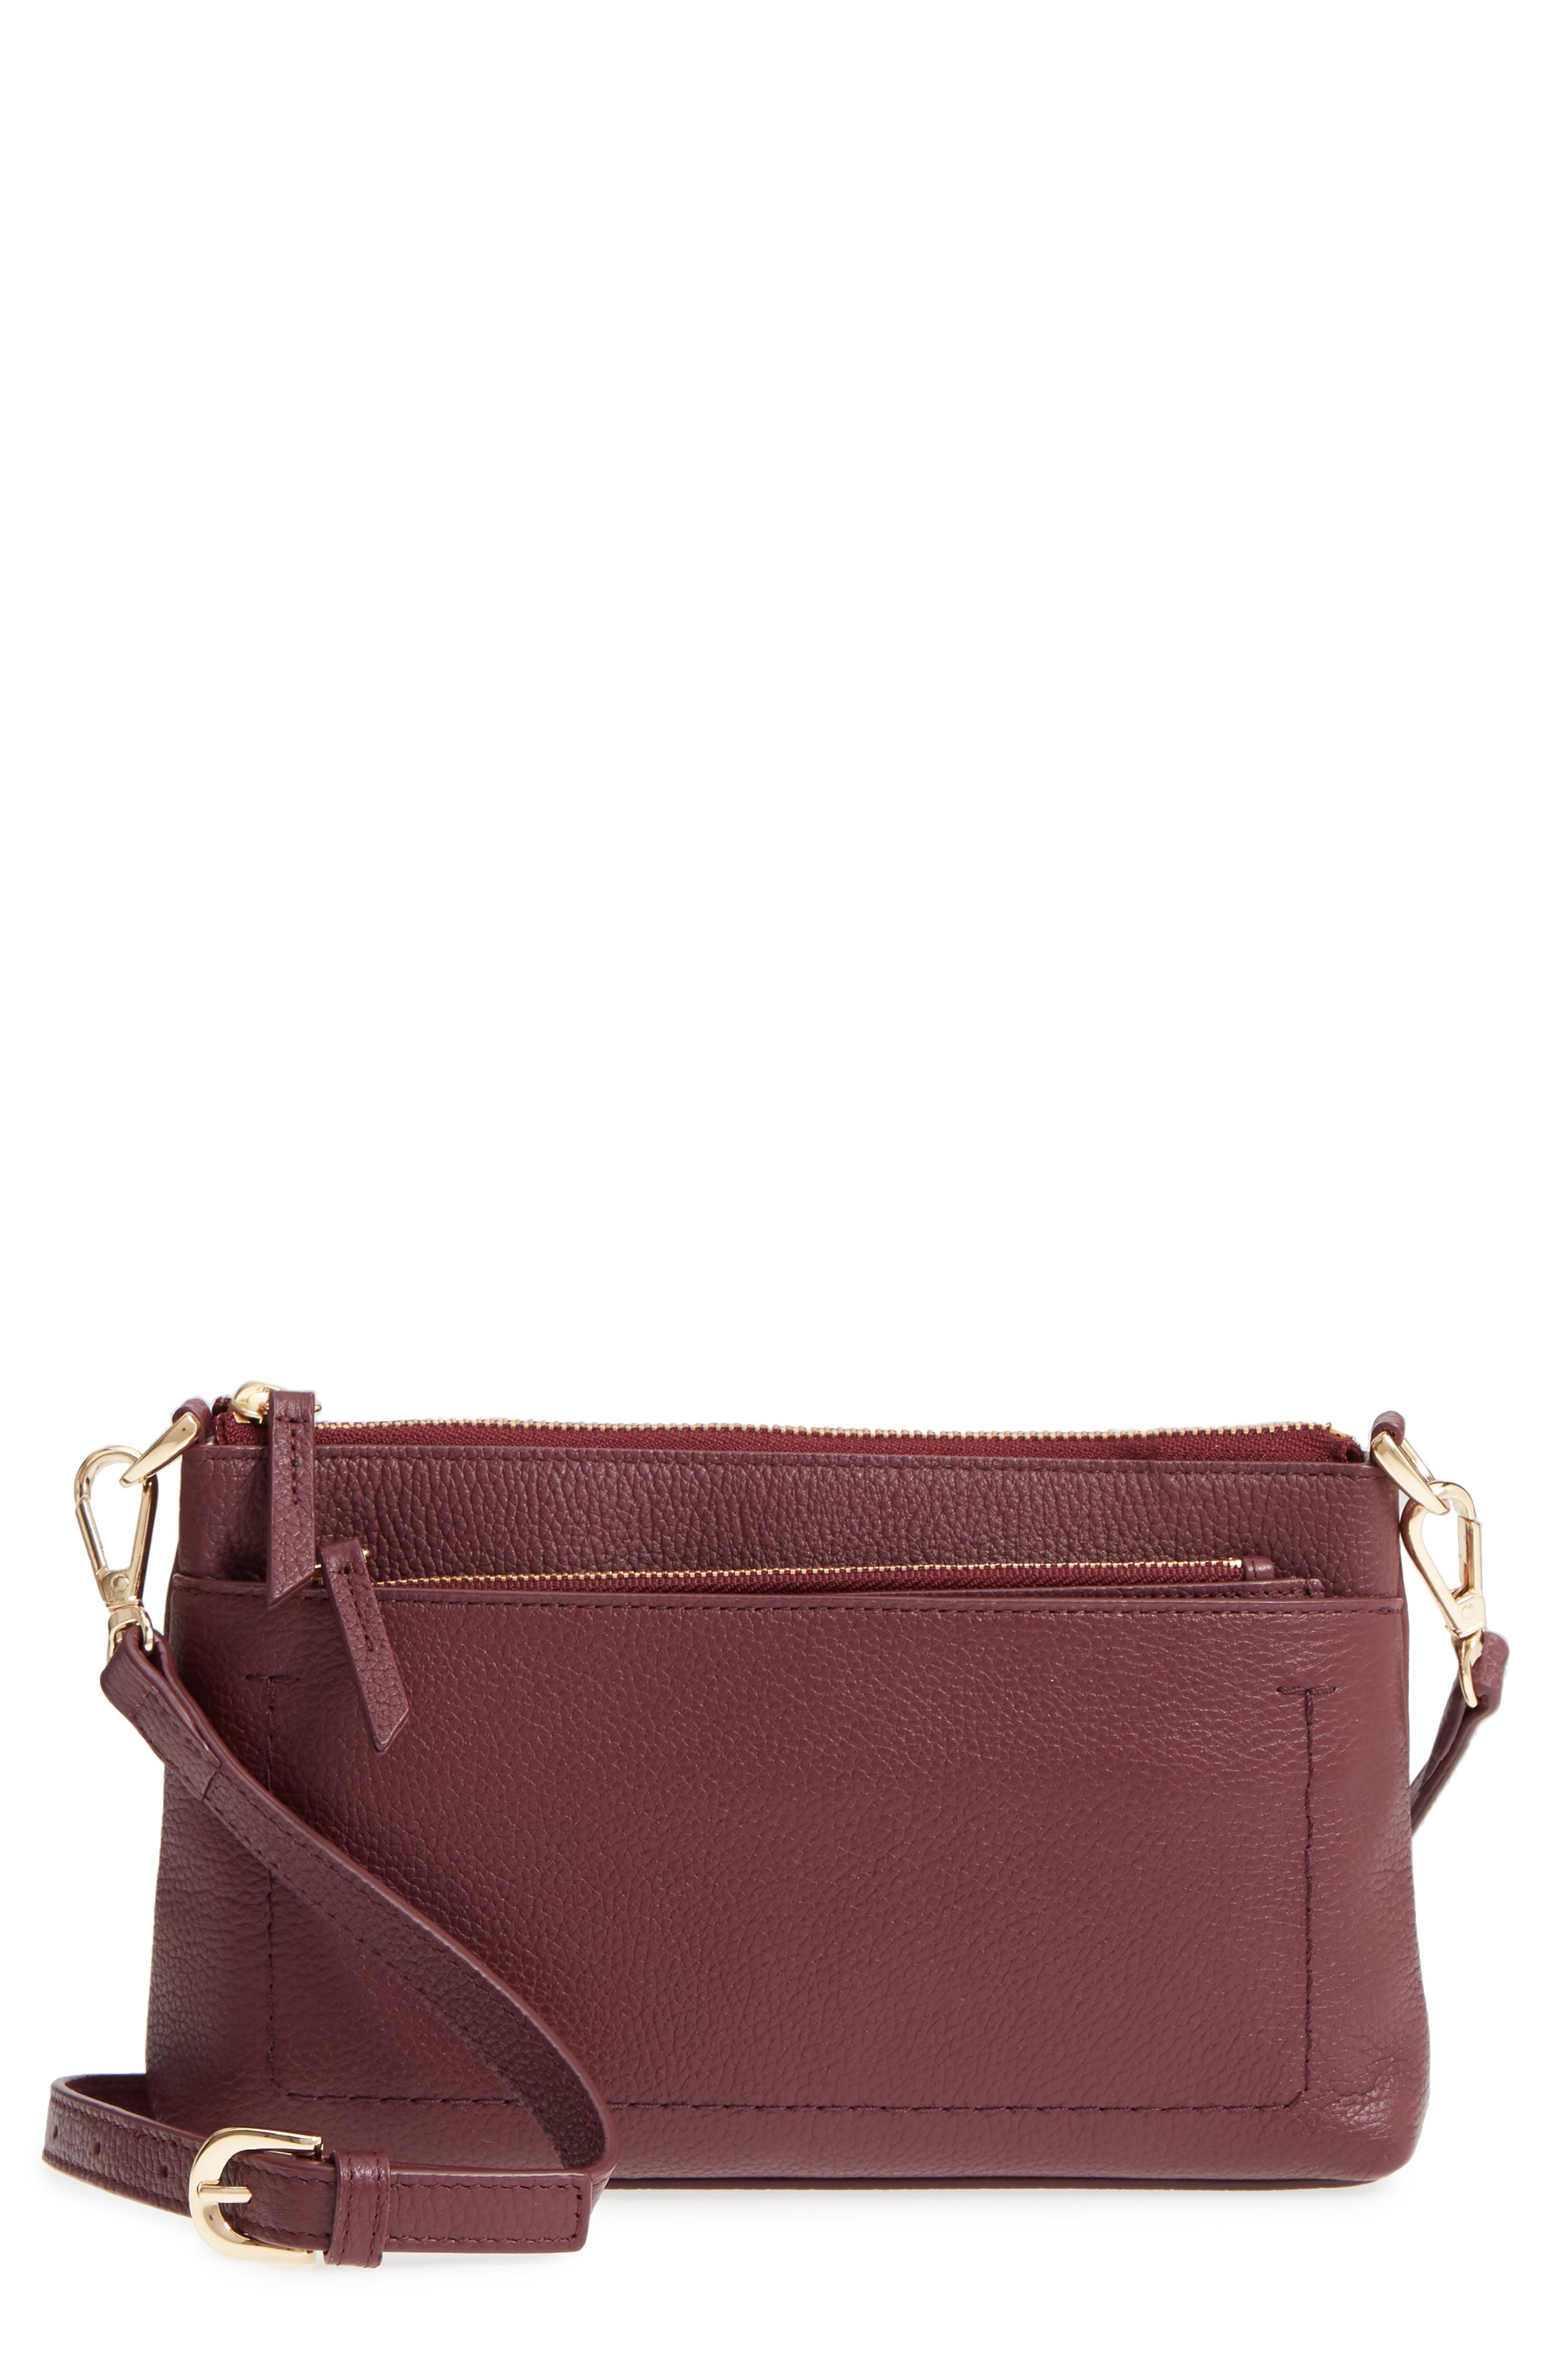 Brixton Convertible Leather Crossbody Bag with Pop-Out Card Holder,                         Main,                         color, Burgundy London